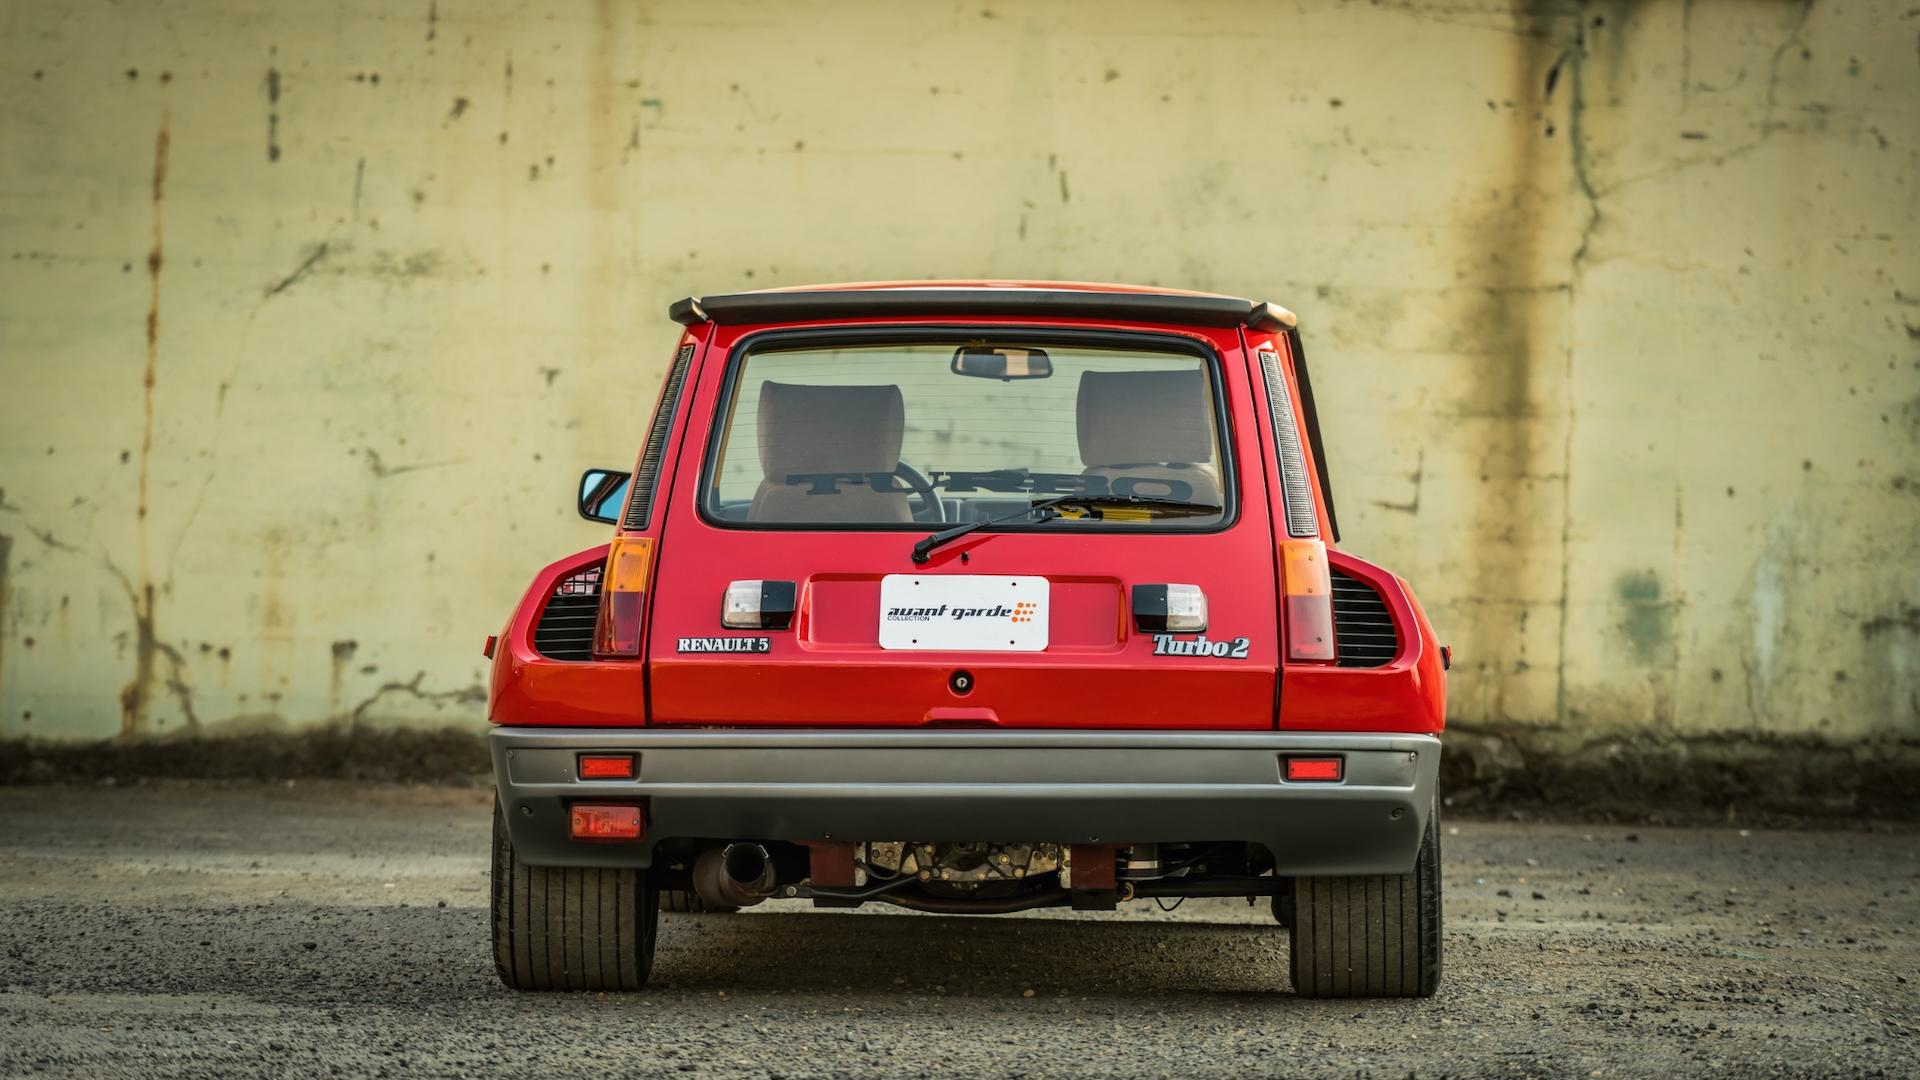 Renault_5_Turbo_2_Evo_06